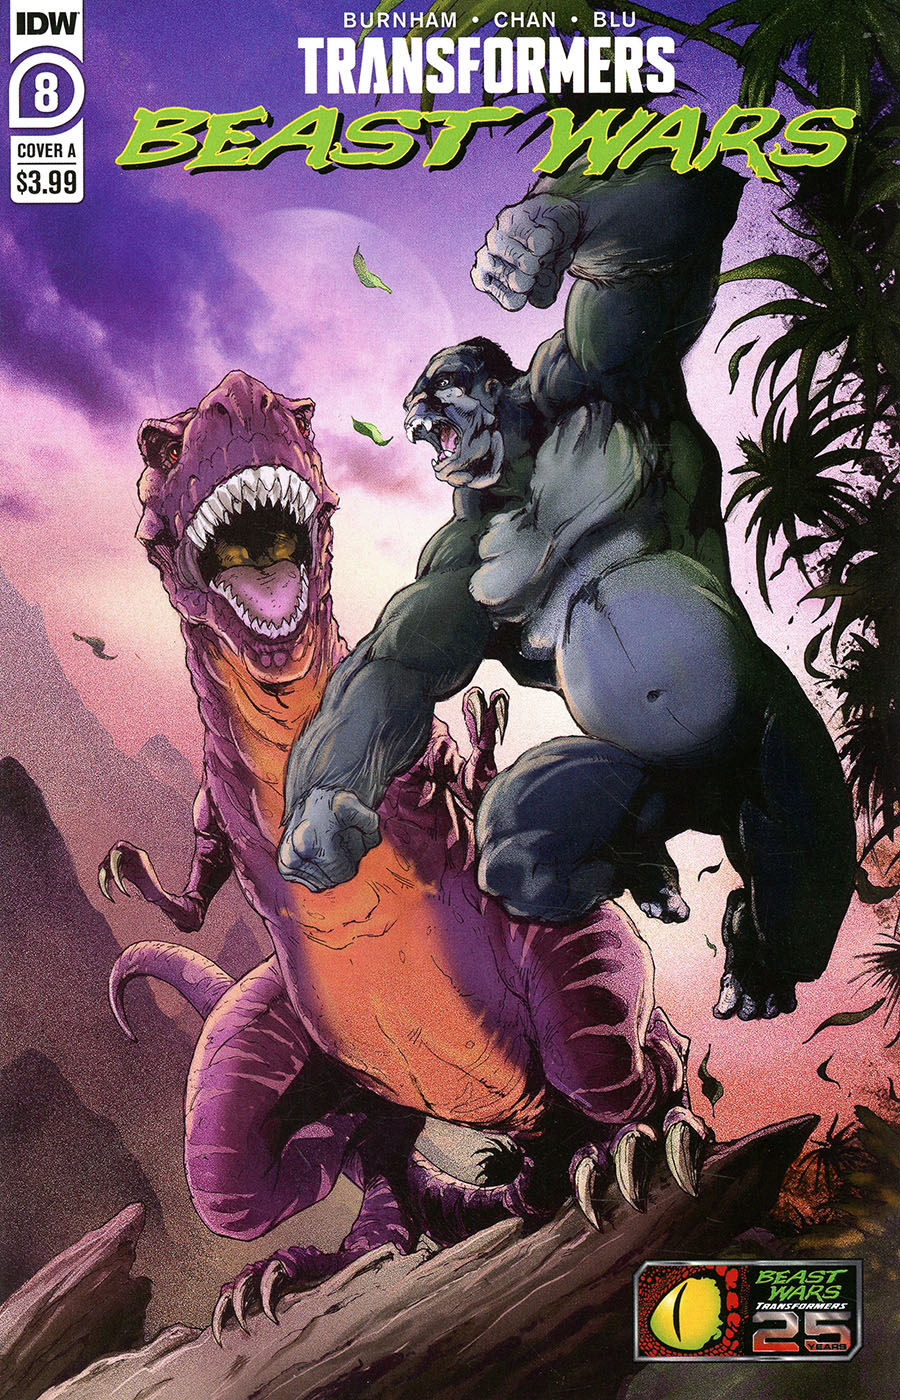 Transformers Beast Wars Vol 2 #8 Cover A Regular Andrew Griffith Cover